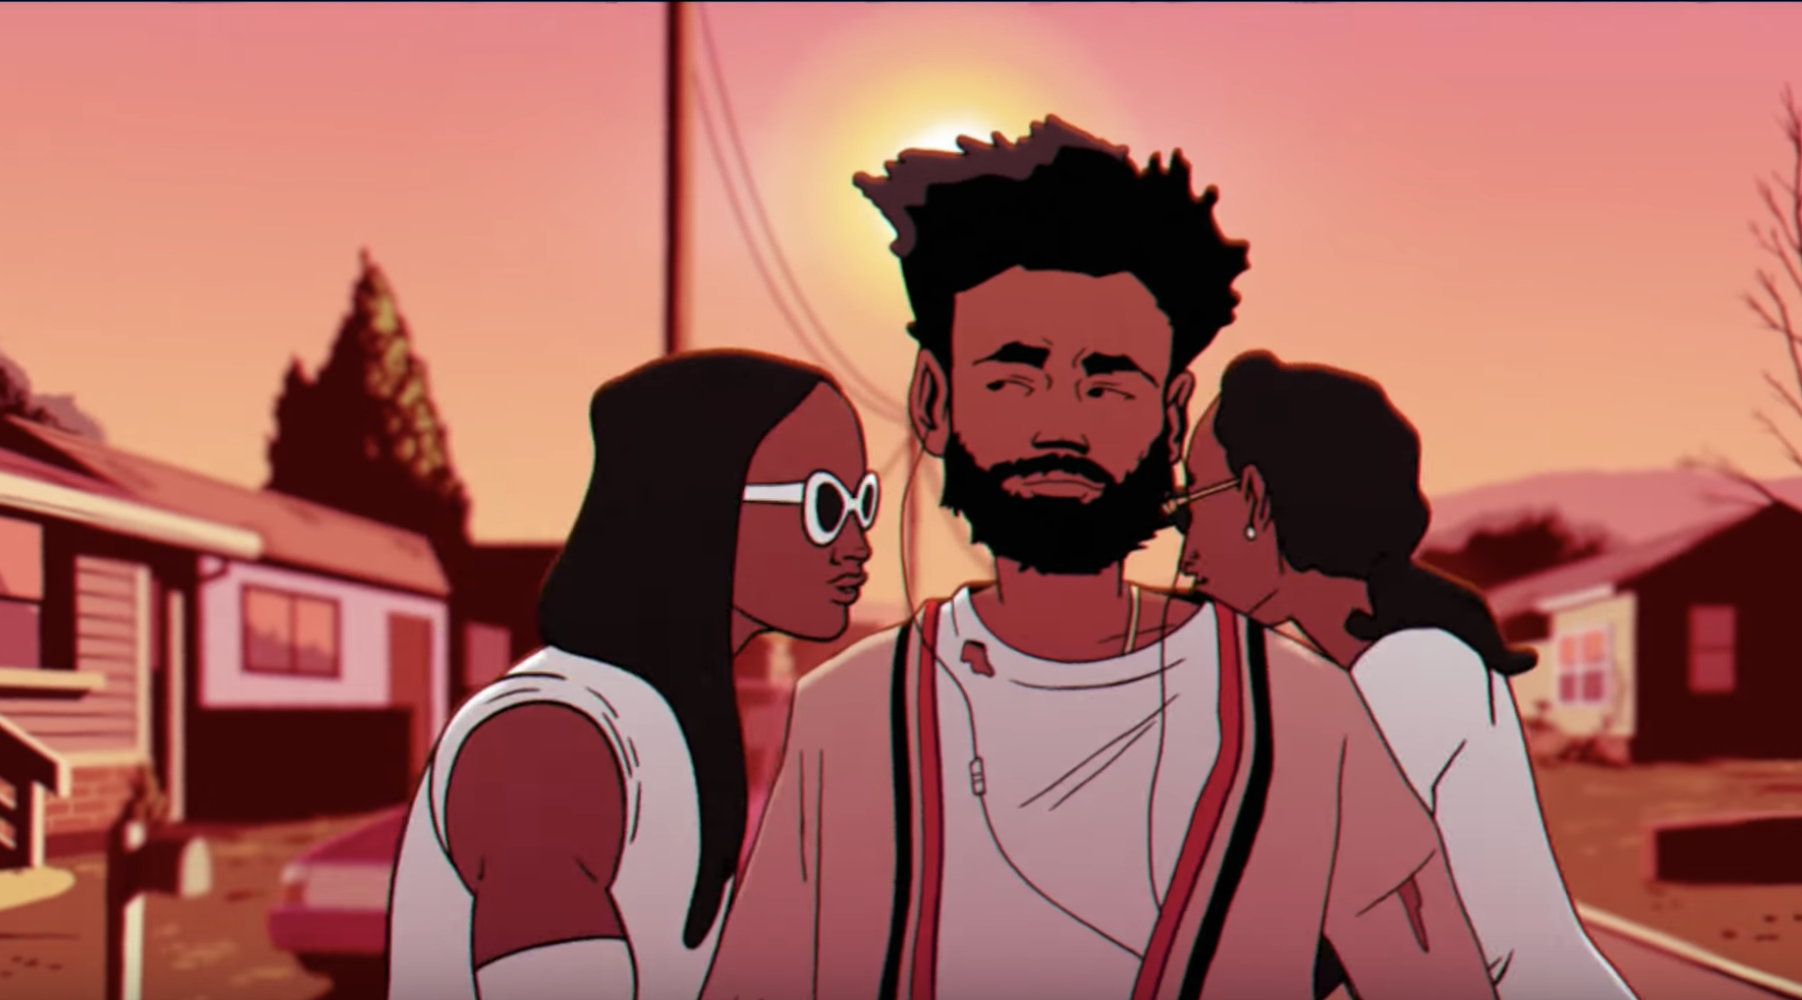 Coolest Hat Ever >> Childish Gambino's Feels like Summer video is finally out ...